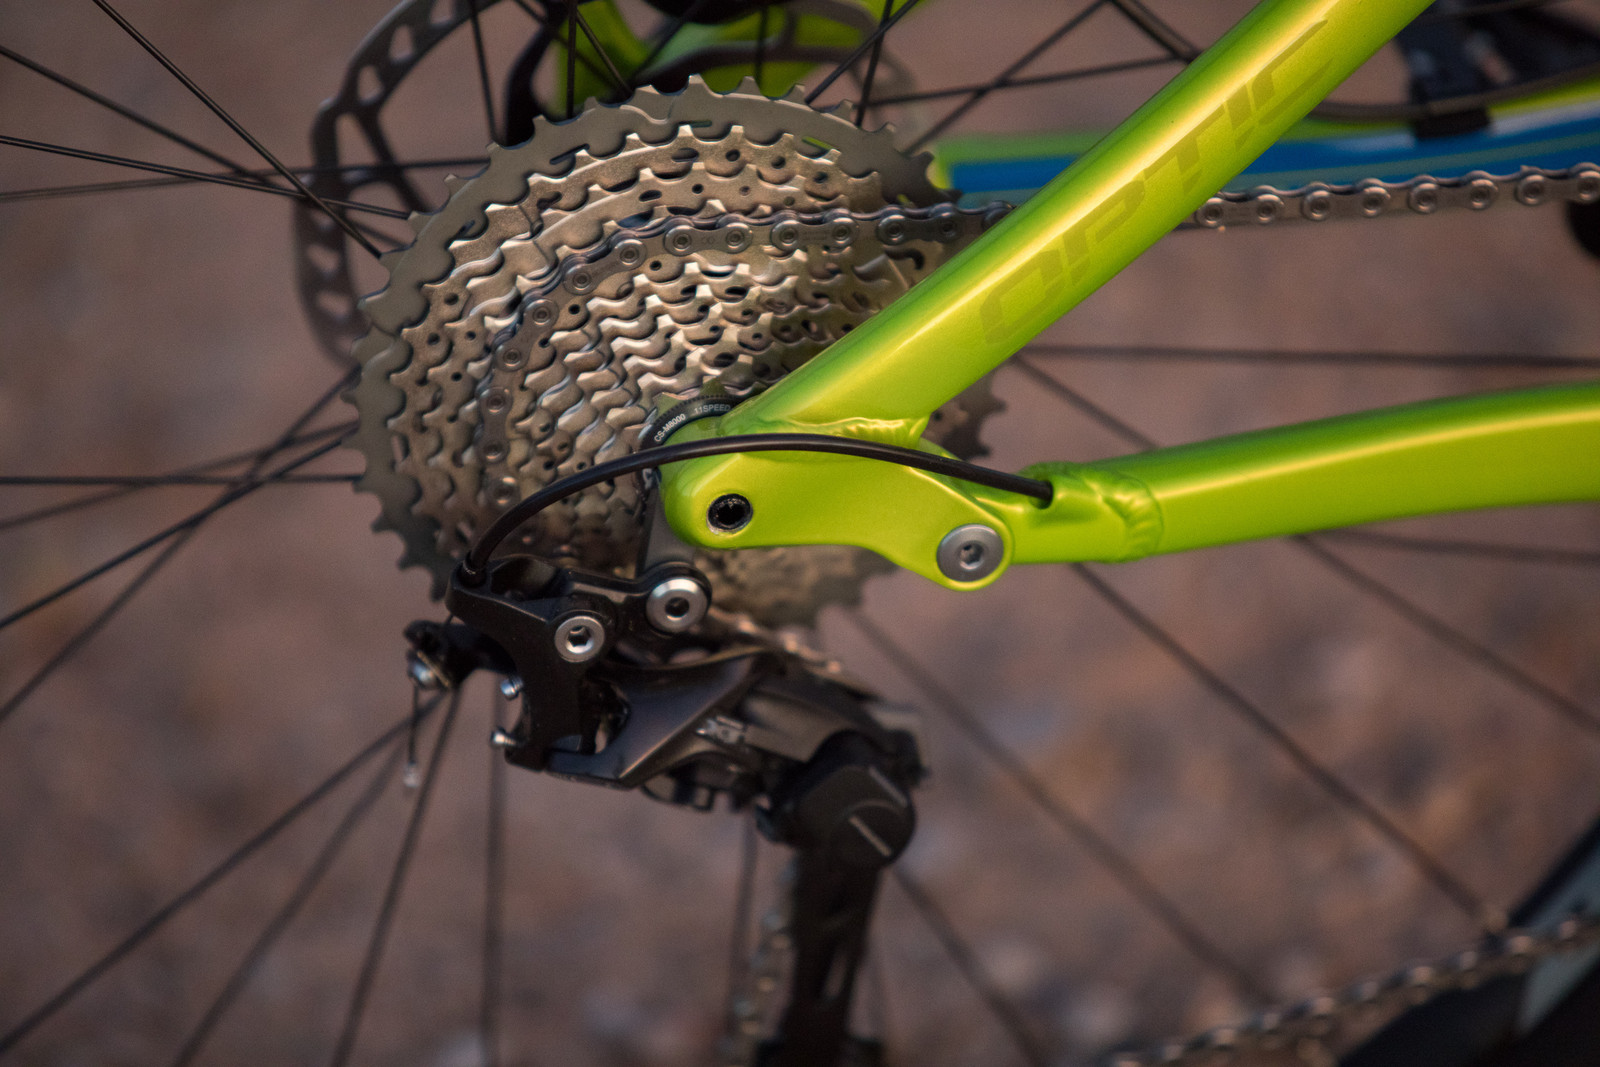 Norco Optic Carbon 9.2 - 2017 Vital MTB Test Sessions - Norco Optic Carbon 9.2 - 2017 Vital MTB Test Sessions - Mountain Biking Pictures - Vital MTB